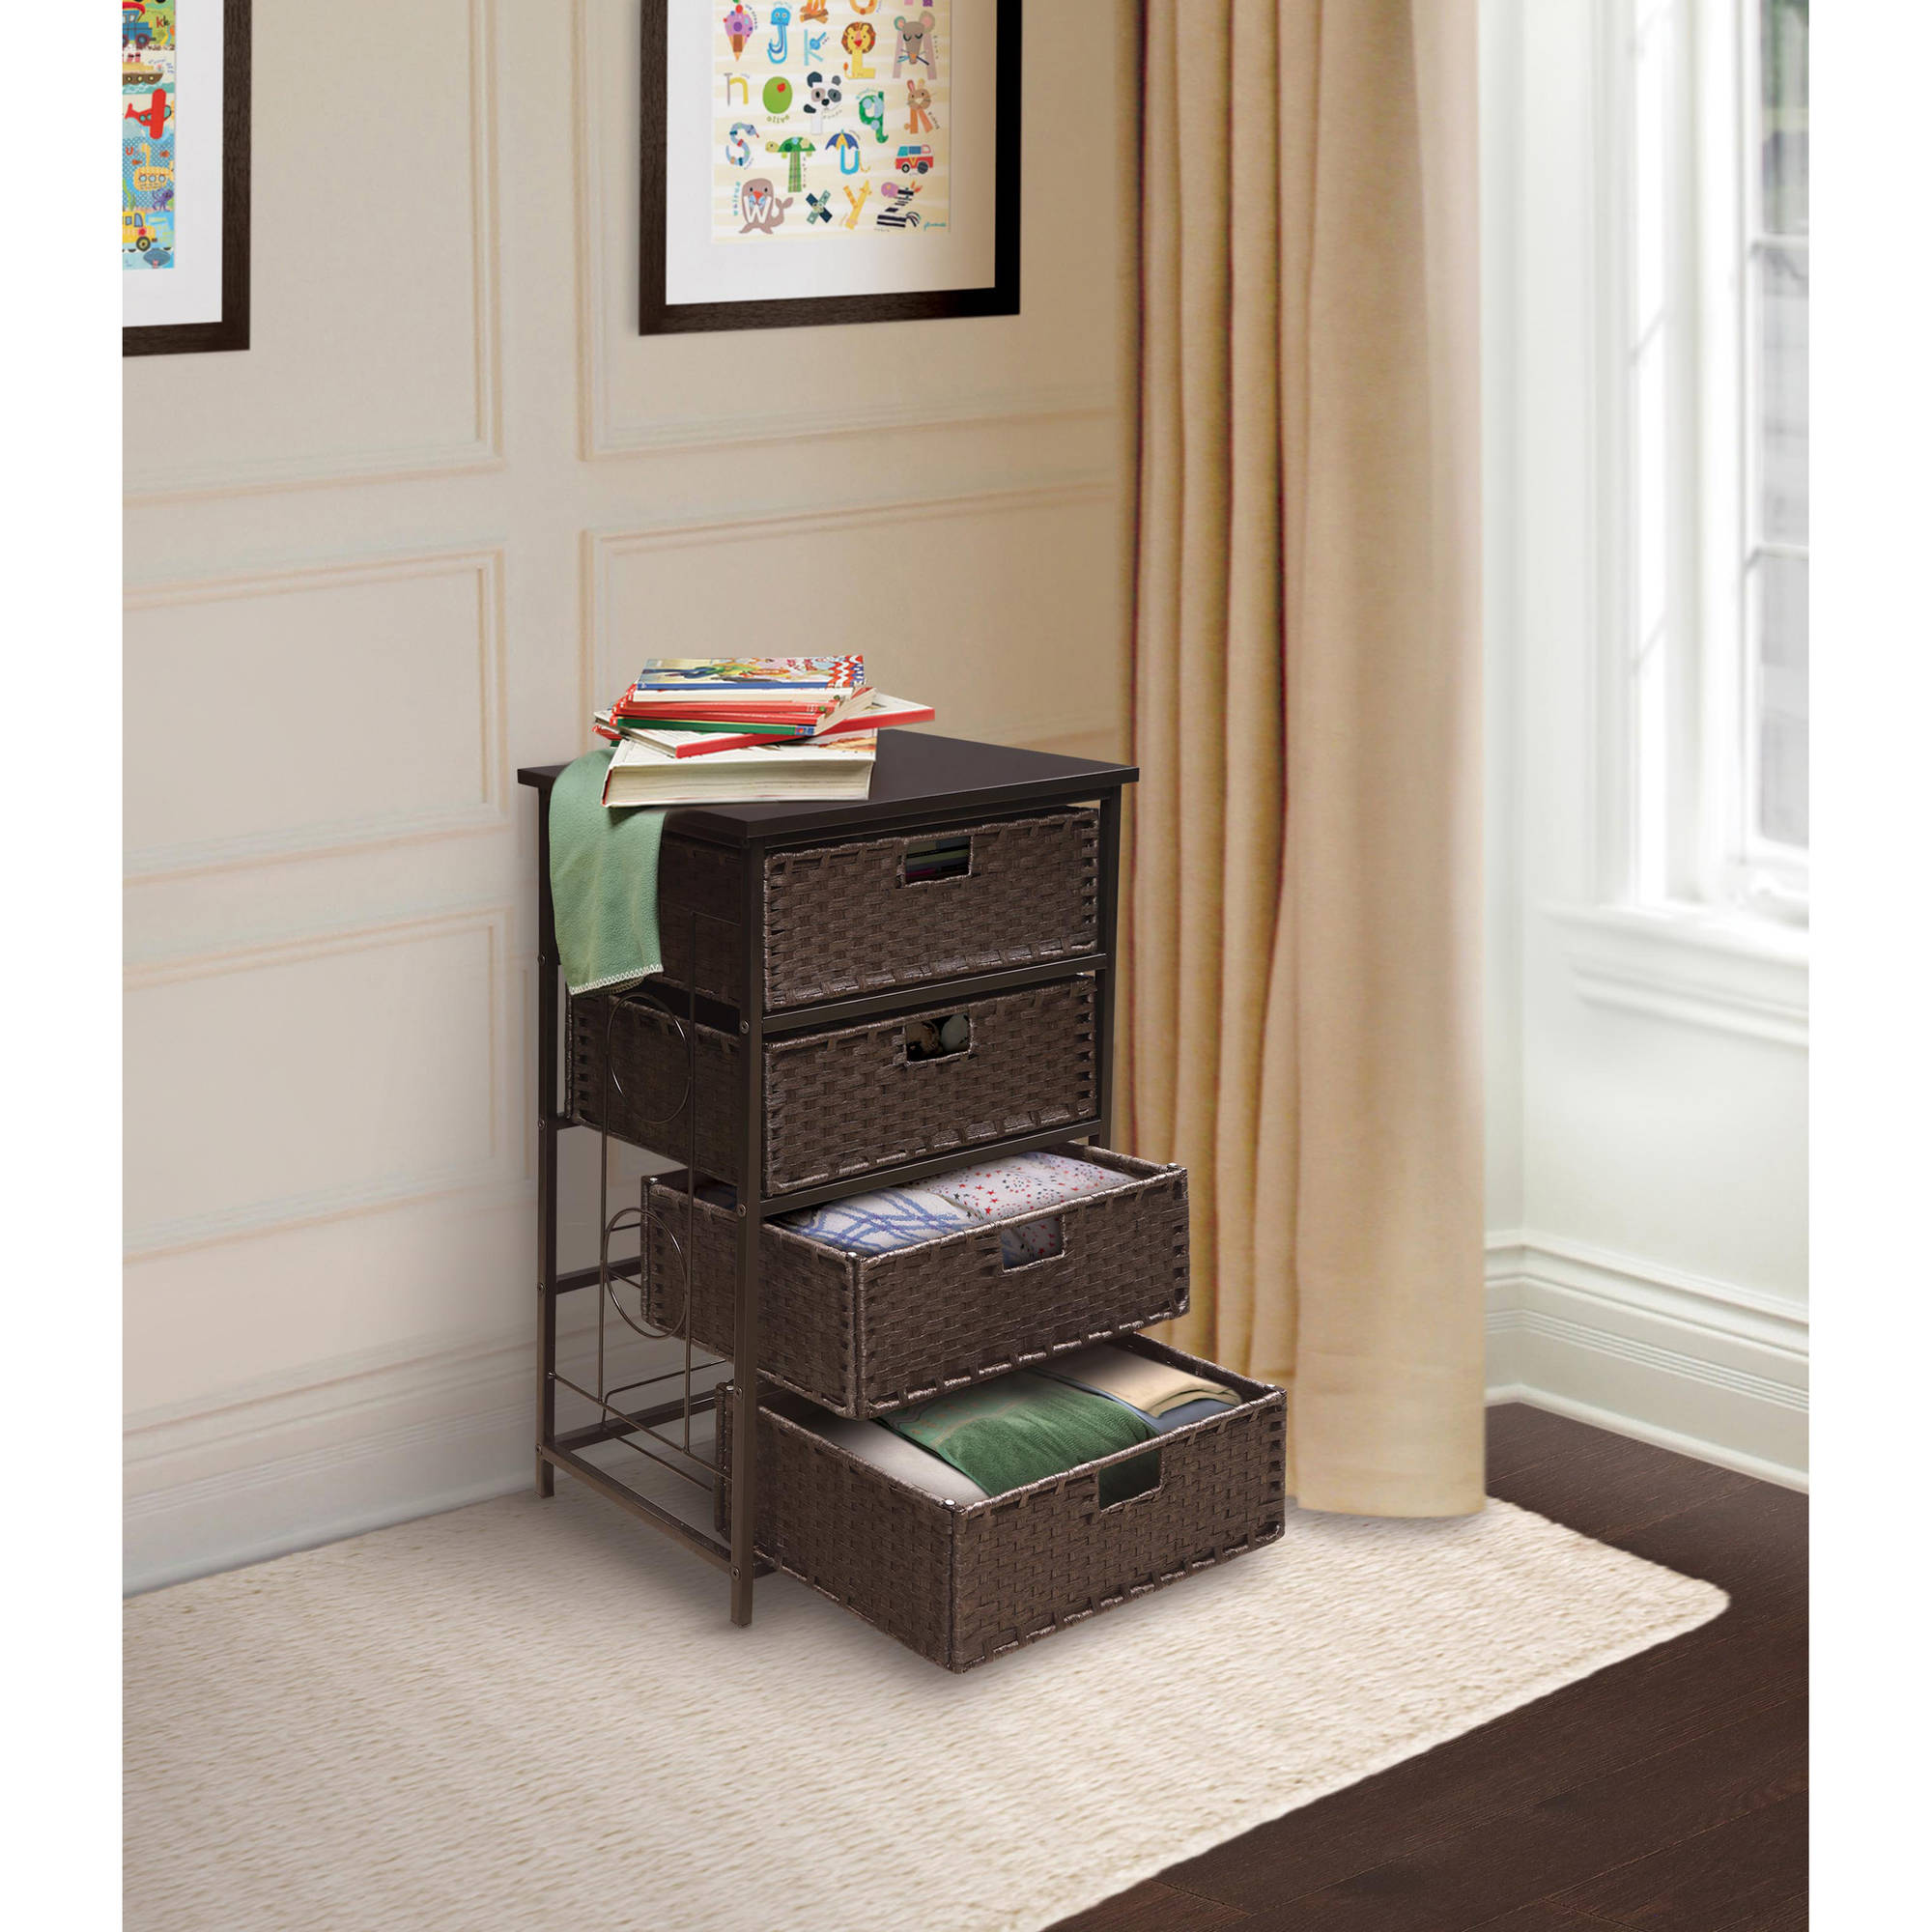 Badger Basket August Collection Tall Four-Basket Storage Unit, Espresso by Badger Basket